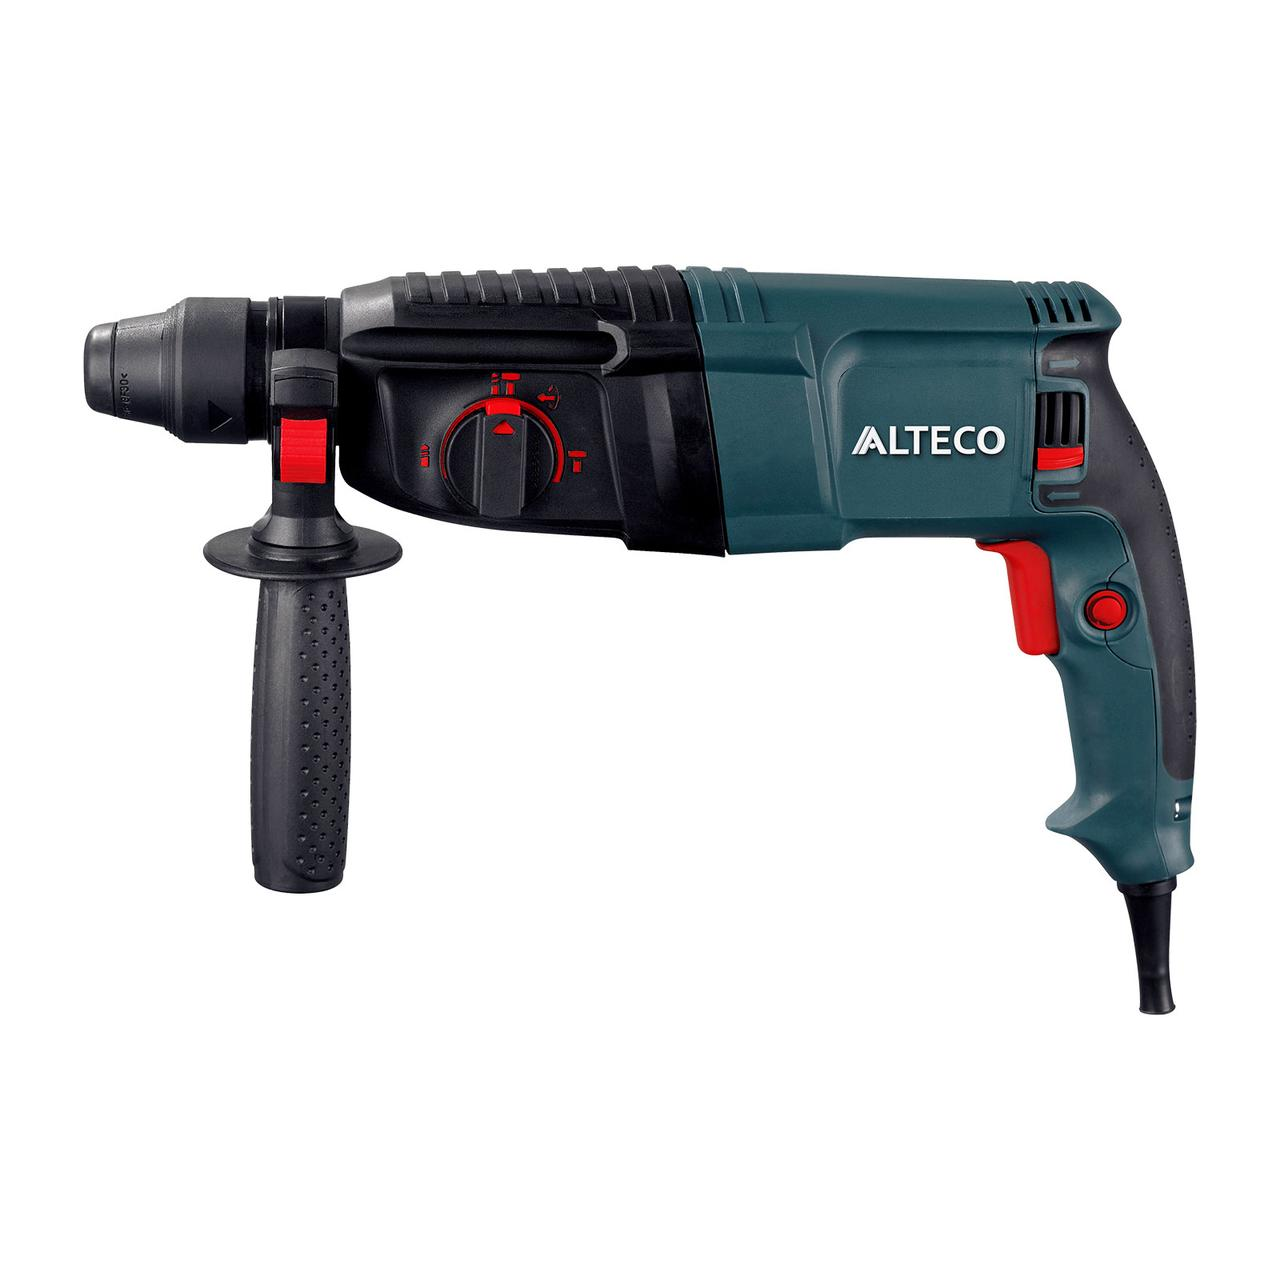 ALTECO RH 0215 Promo SDS-Plus / 26 мм Перфоратор